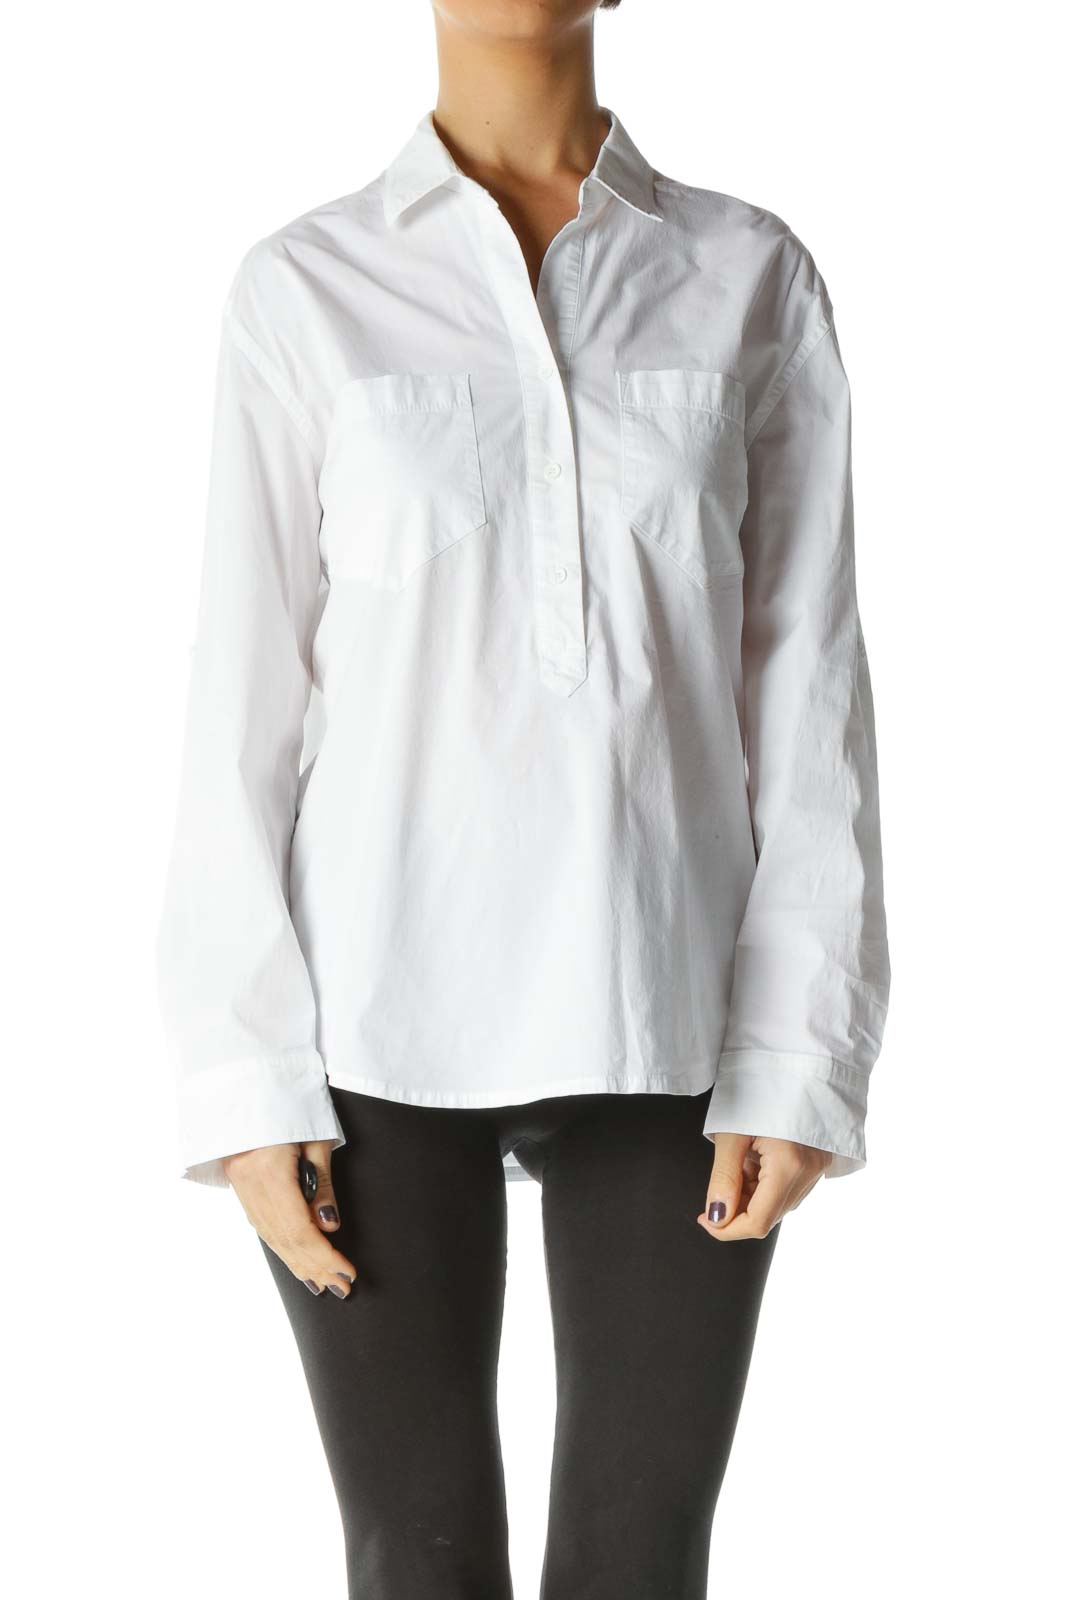 White Solid Collared Top Front